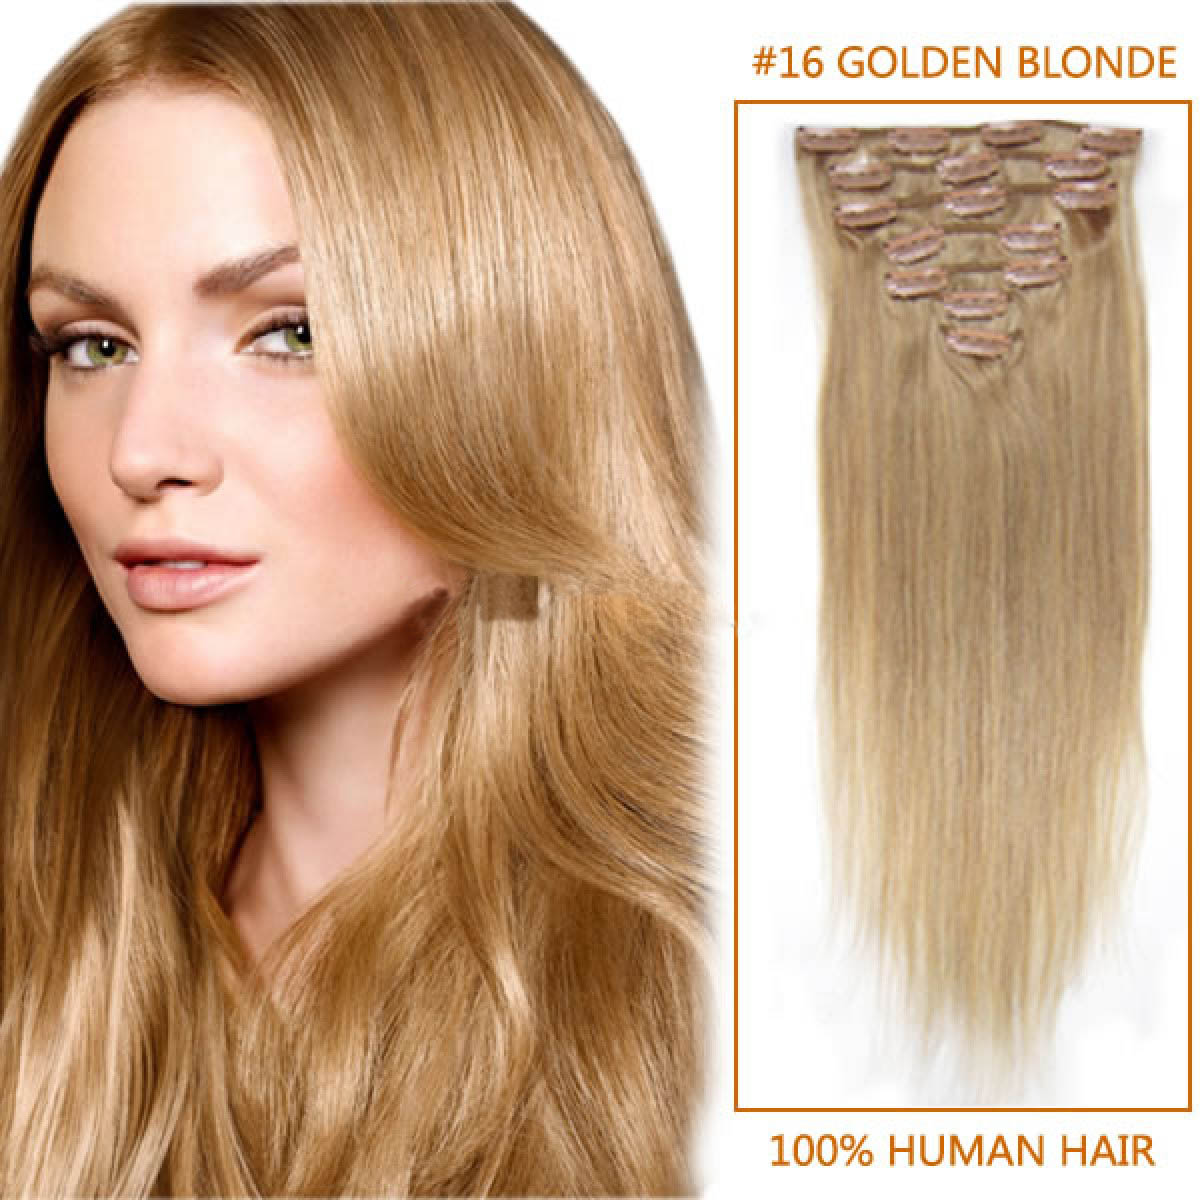 18 Inch 16 Golden Blonde Clip In Remy Human Hair Extensions 9pcs